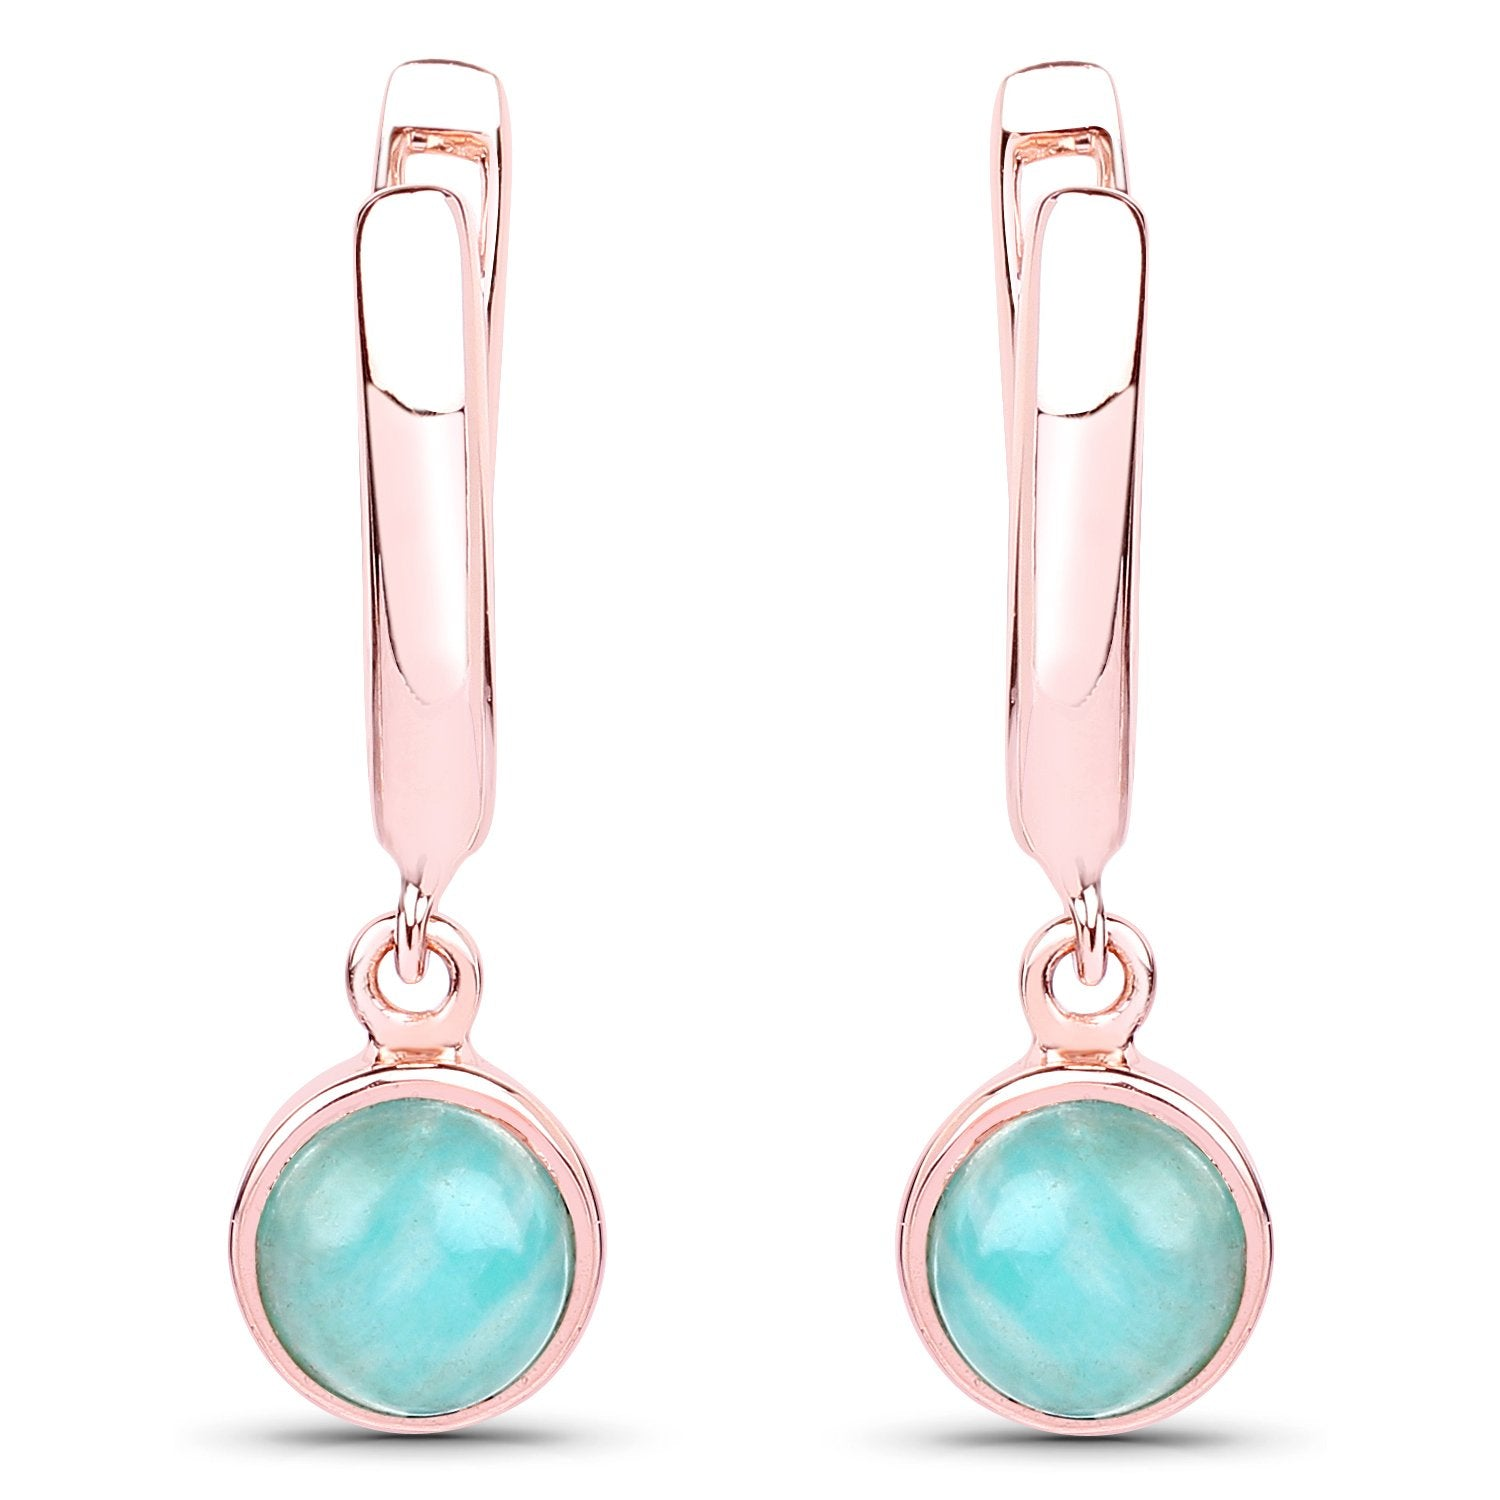 LoveHuang 1.98 Carats Genuine Amazonite Dangle Earrings Solid .925 Sterling Silver With 18KT Rose Gold Plating